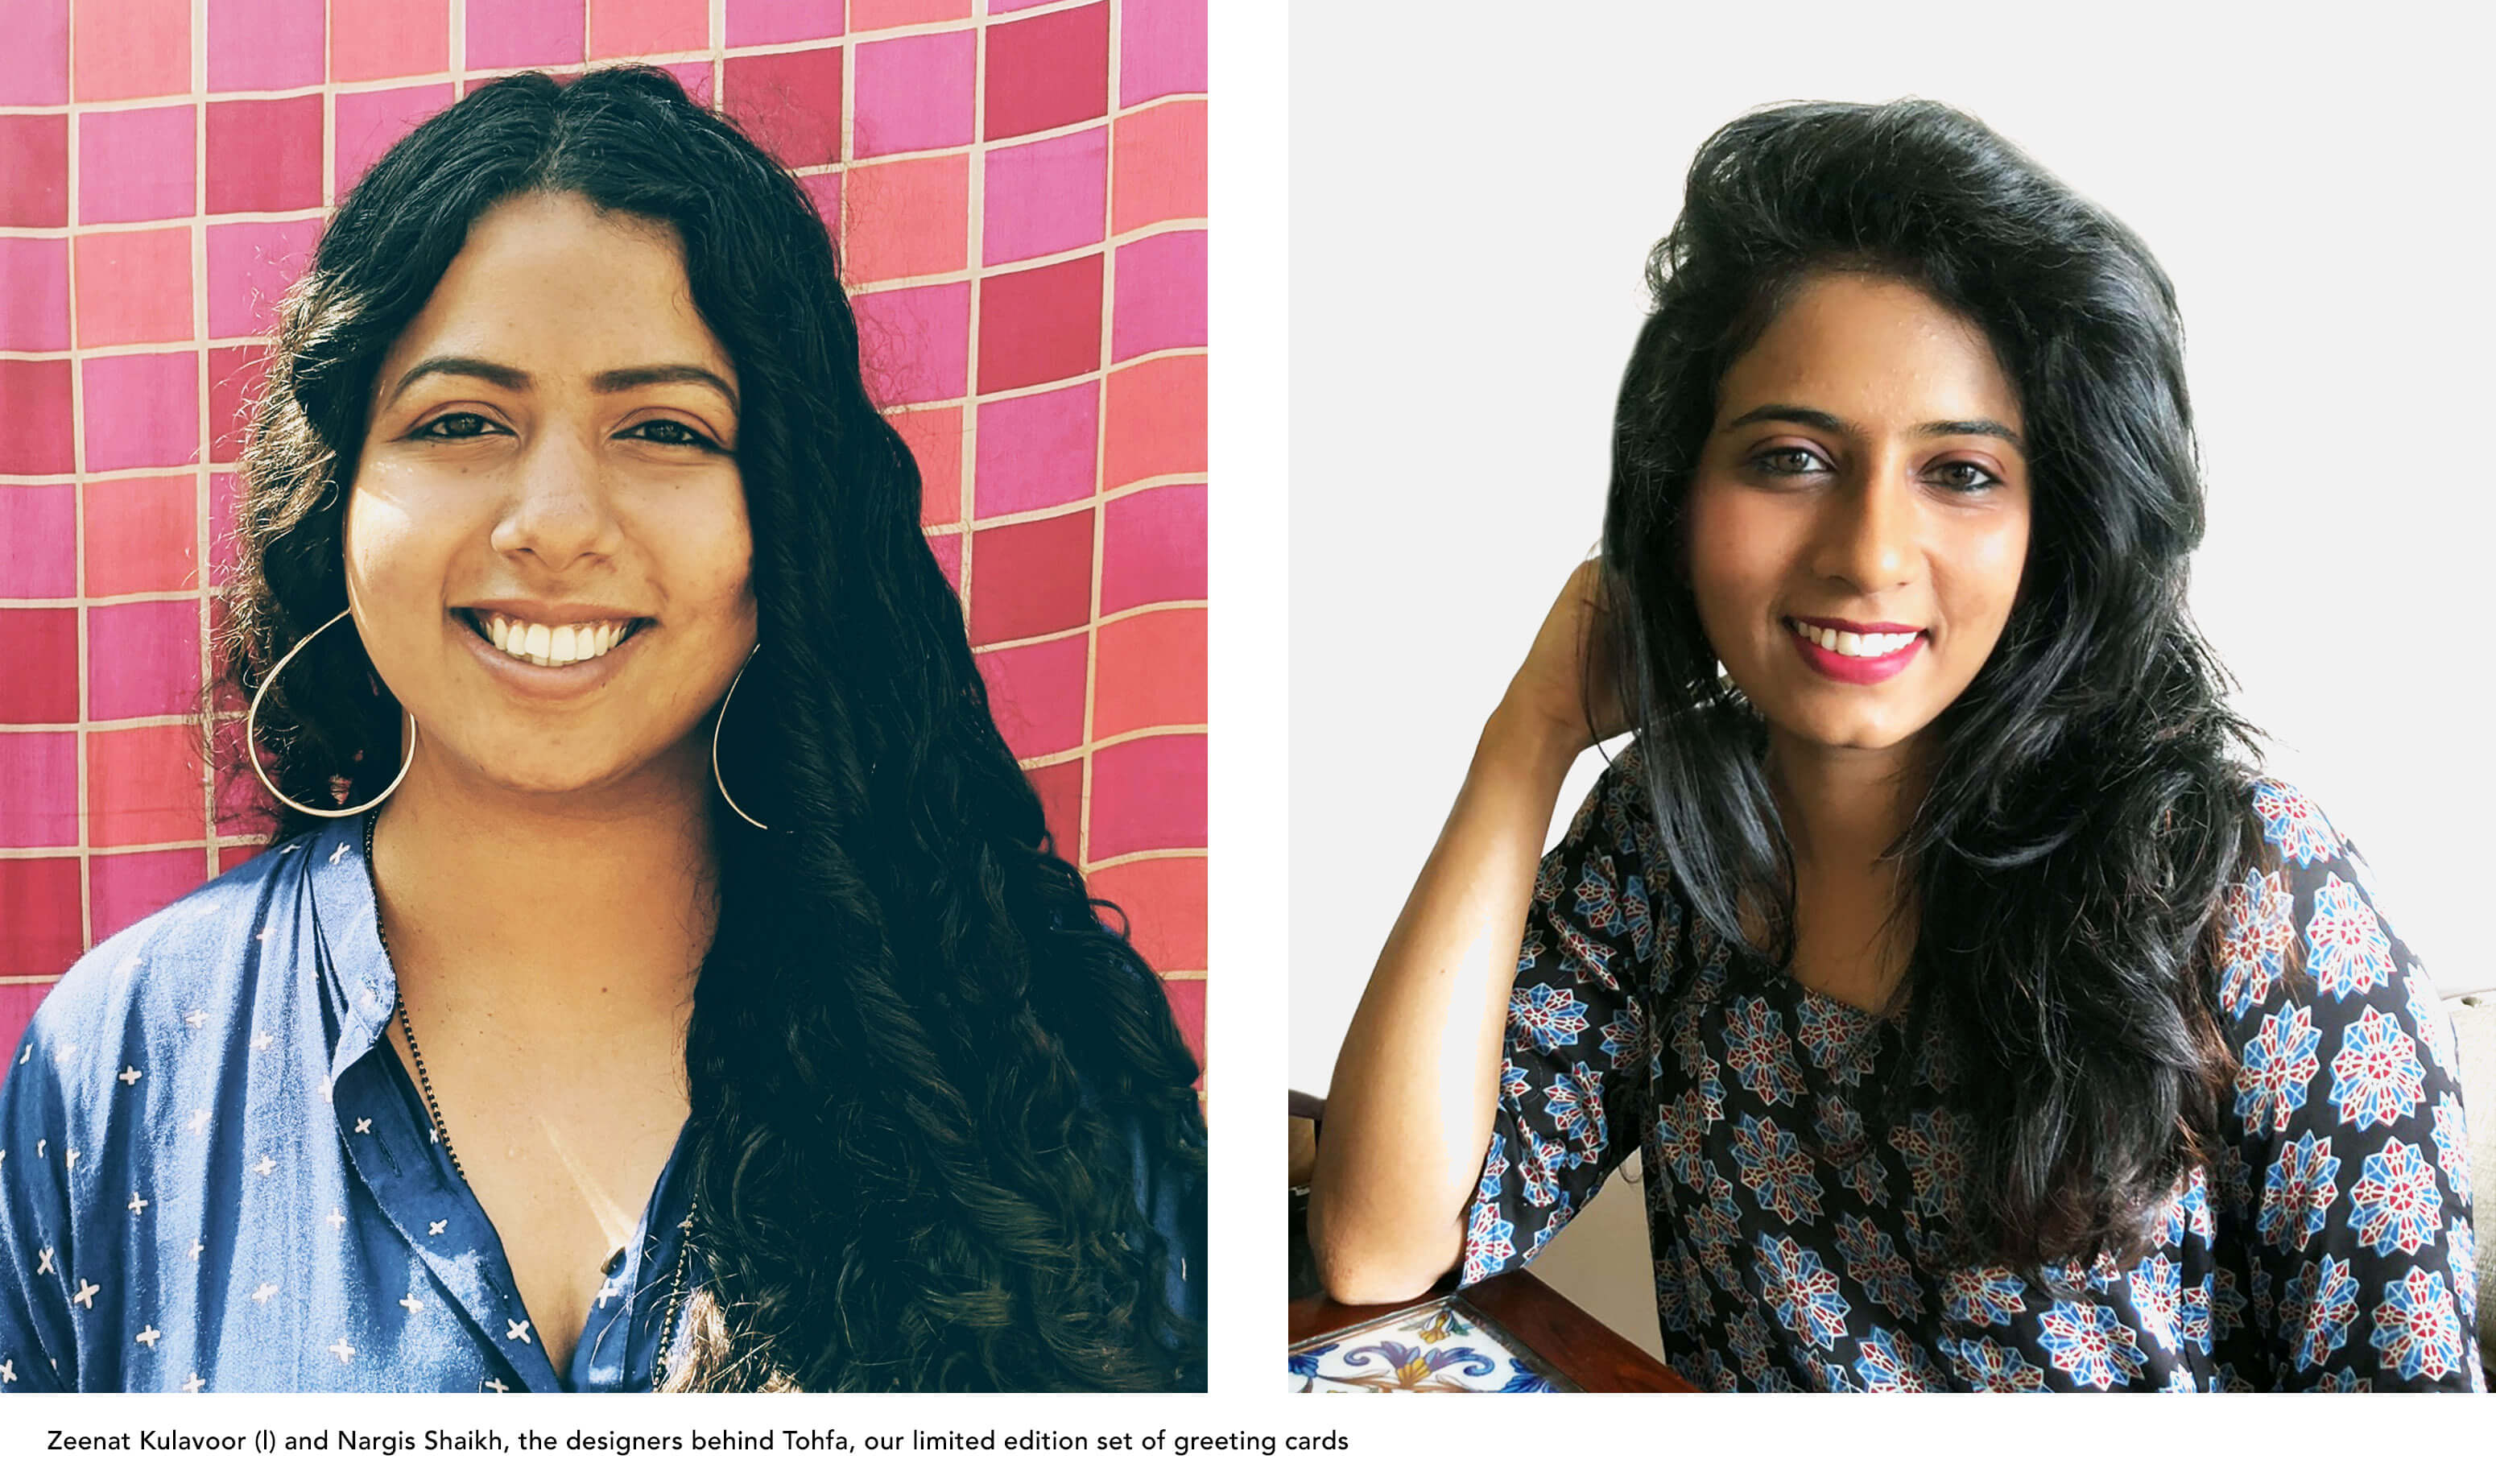 Portaits of two young Indian women with dark skin and long black hair against a bright pink background